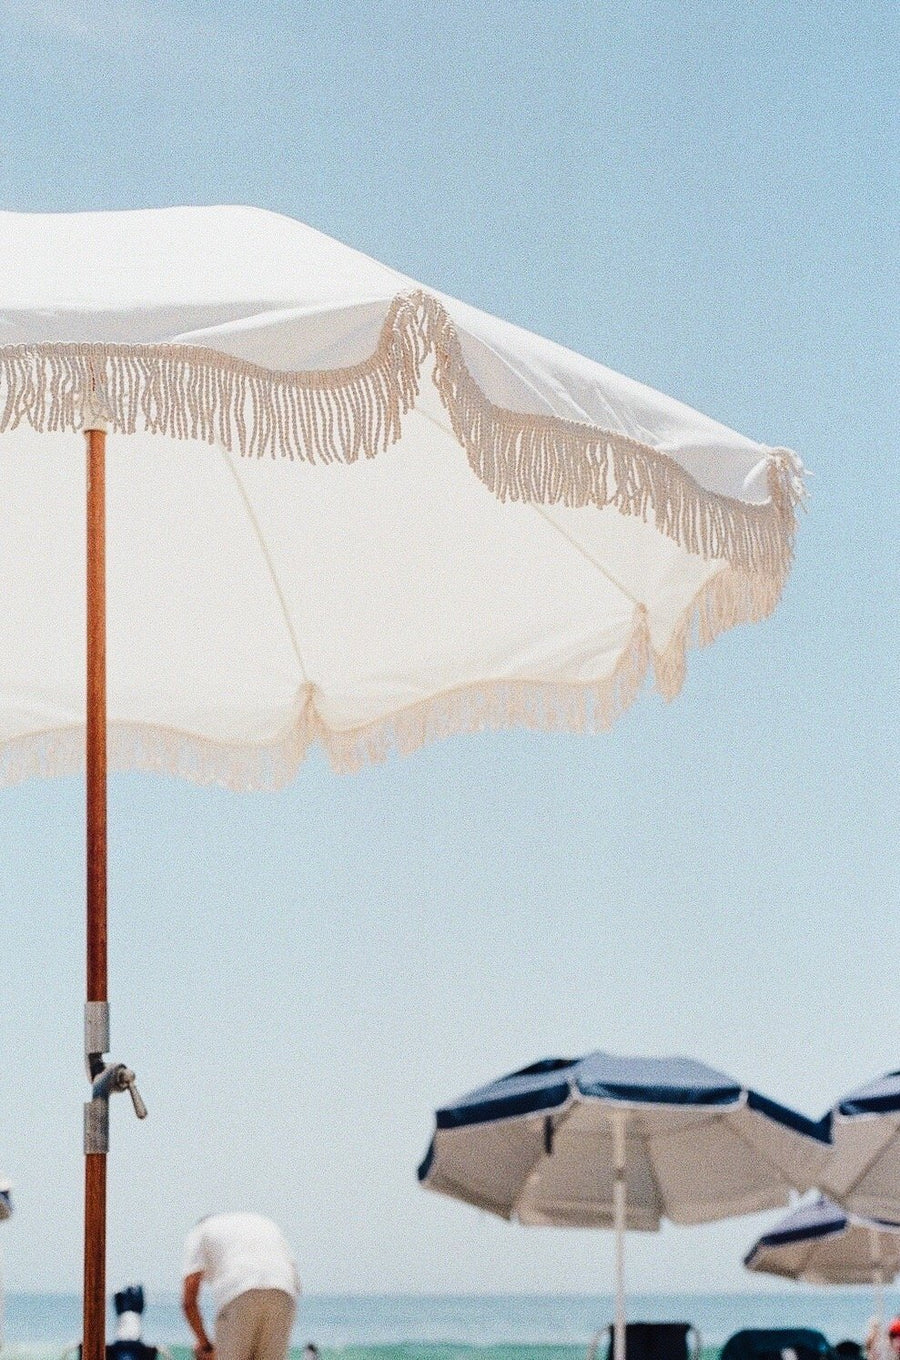 The Premium Beach Umbrella - ANTIQUE WHITE